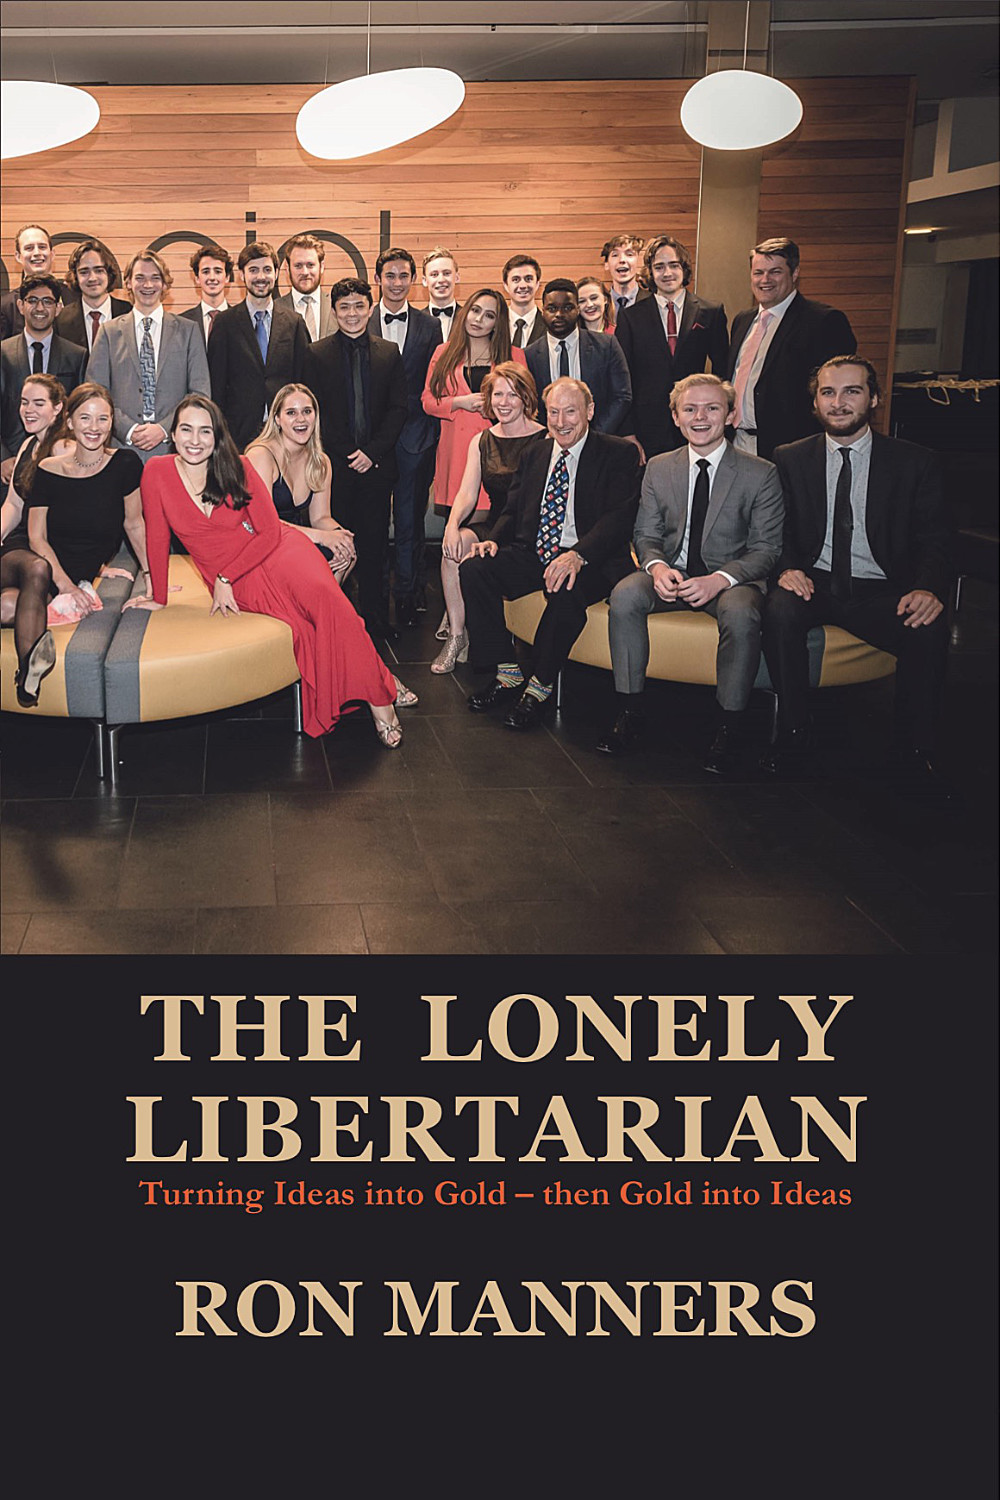 'The Lonely Libertarian' book cover